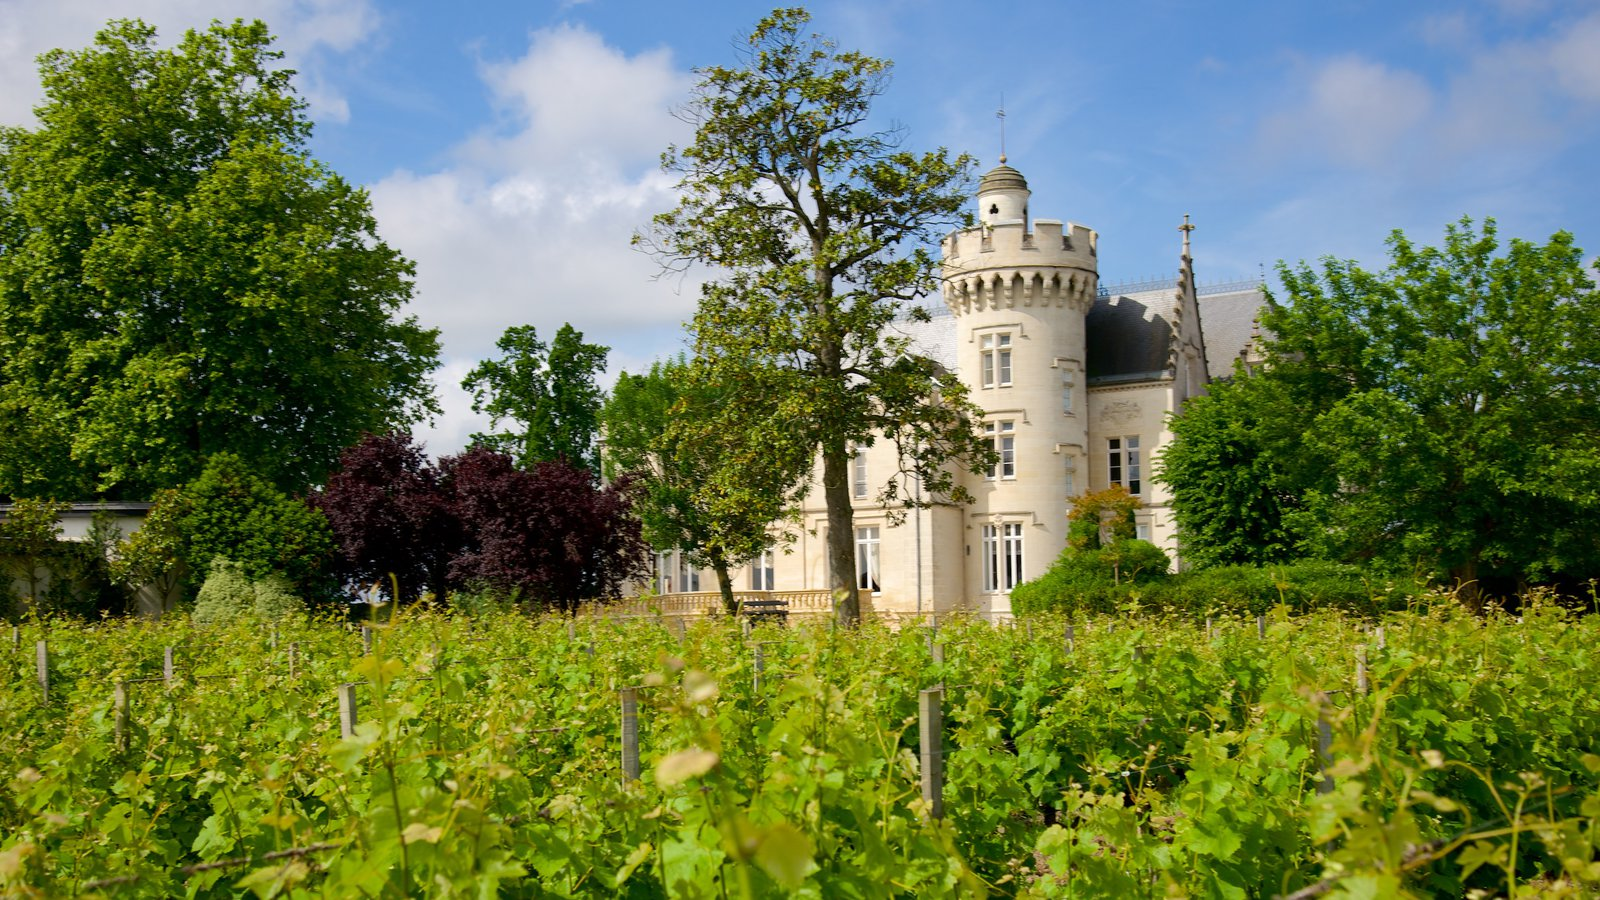 Chateau Pape Clement showing a park and chateau or palace